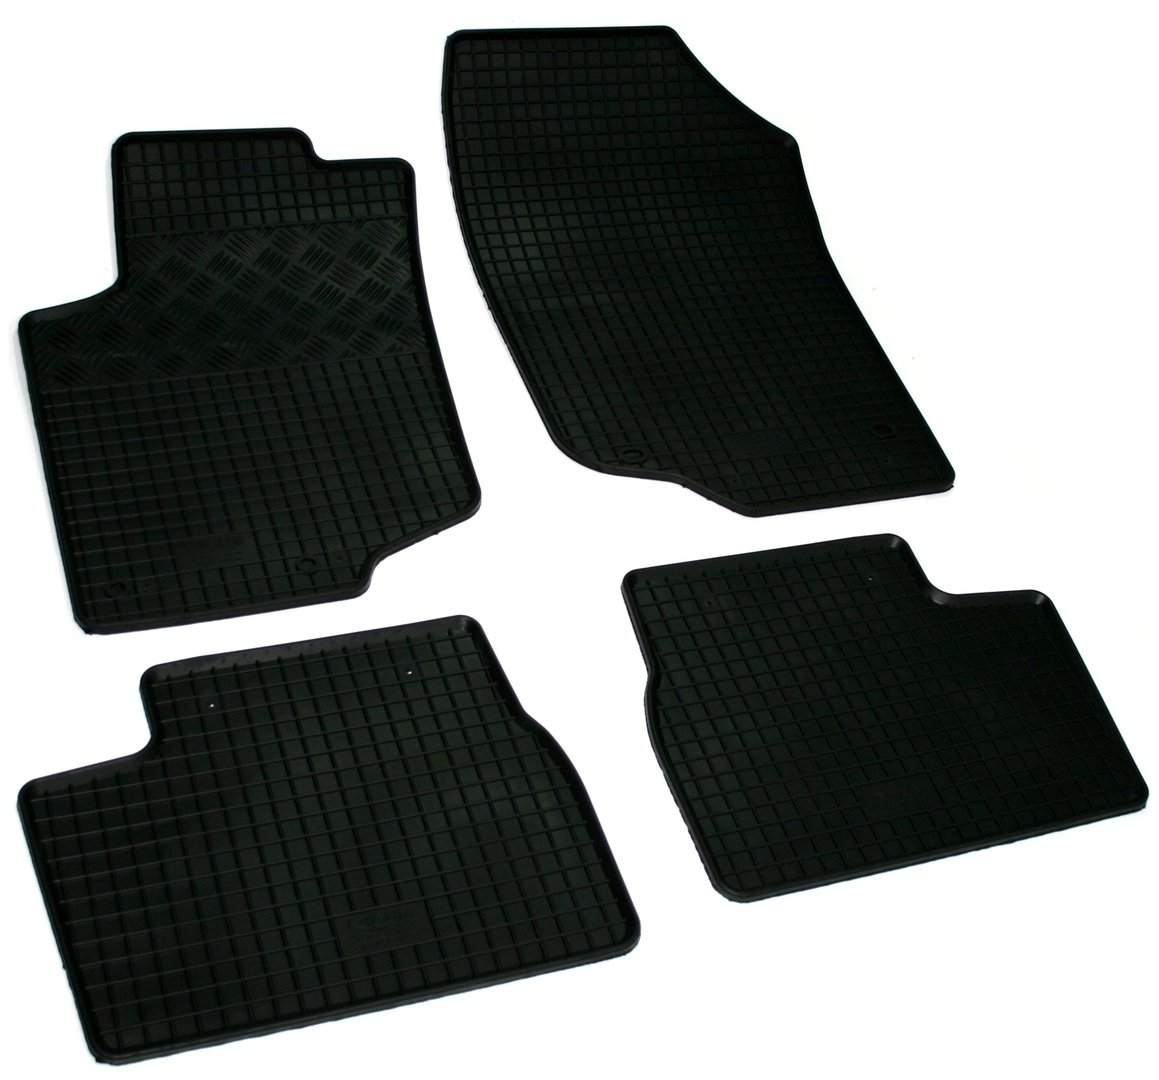 lot de 4 tapis de sol caoutchouc sur mesure peugeot 207 adtuning france. Black Bedroom Furniture Sets. Home Design Ideas